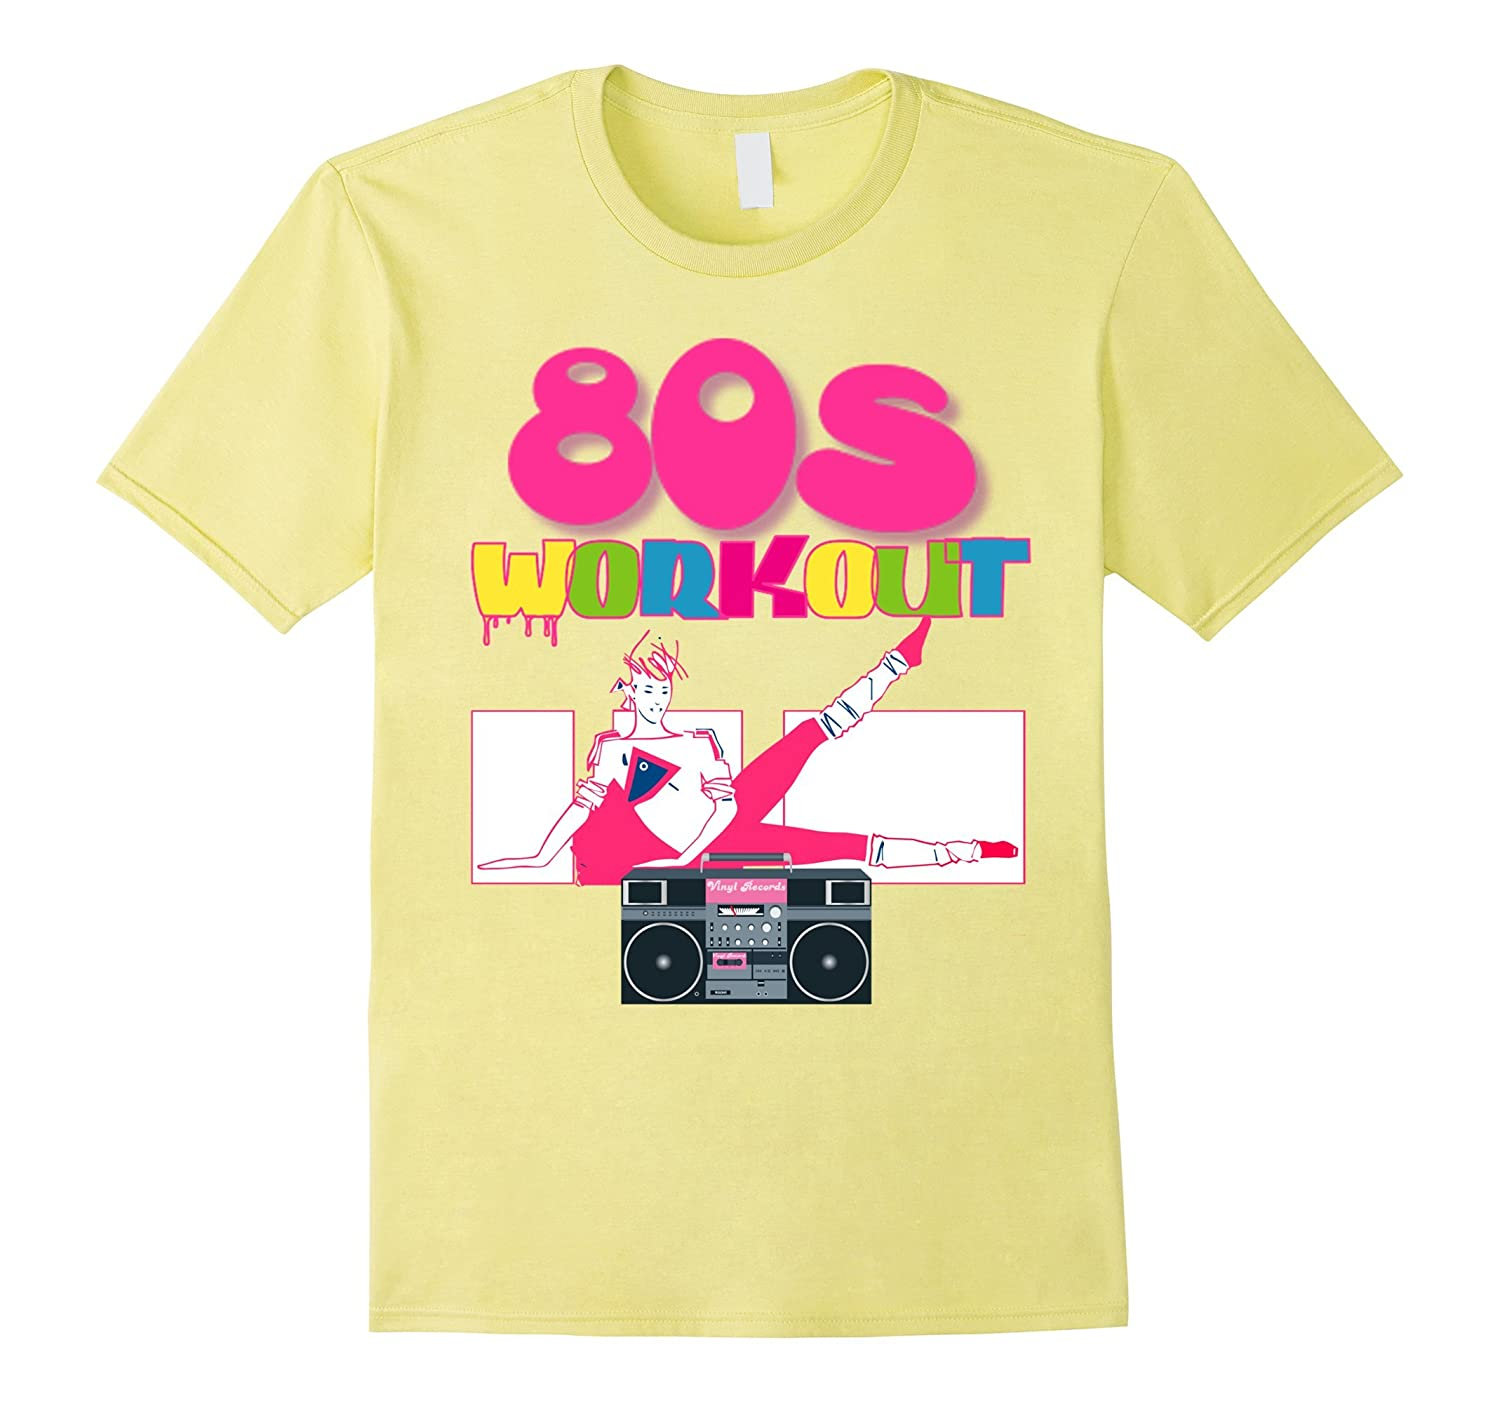 Cute Neon Pink 80s Workout Shirt Women Outfit Costume Top Anz